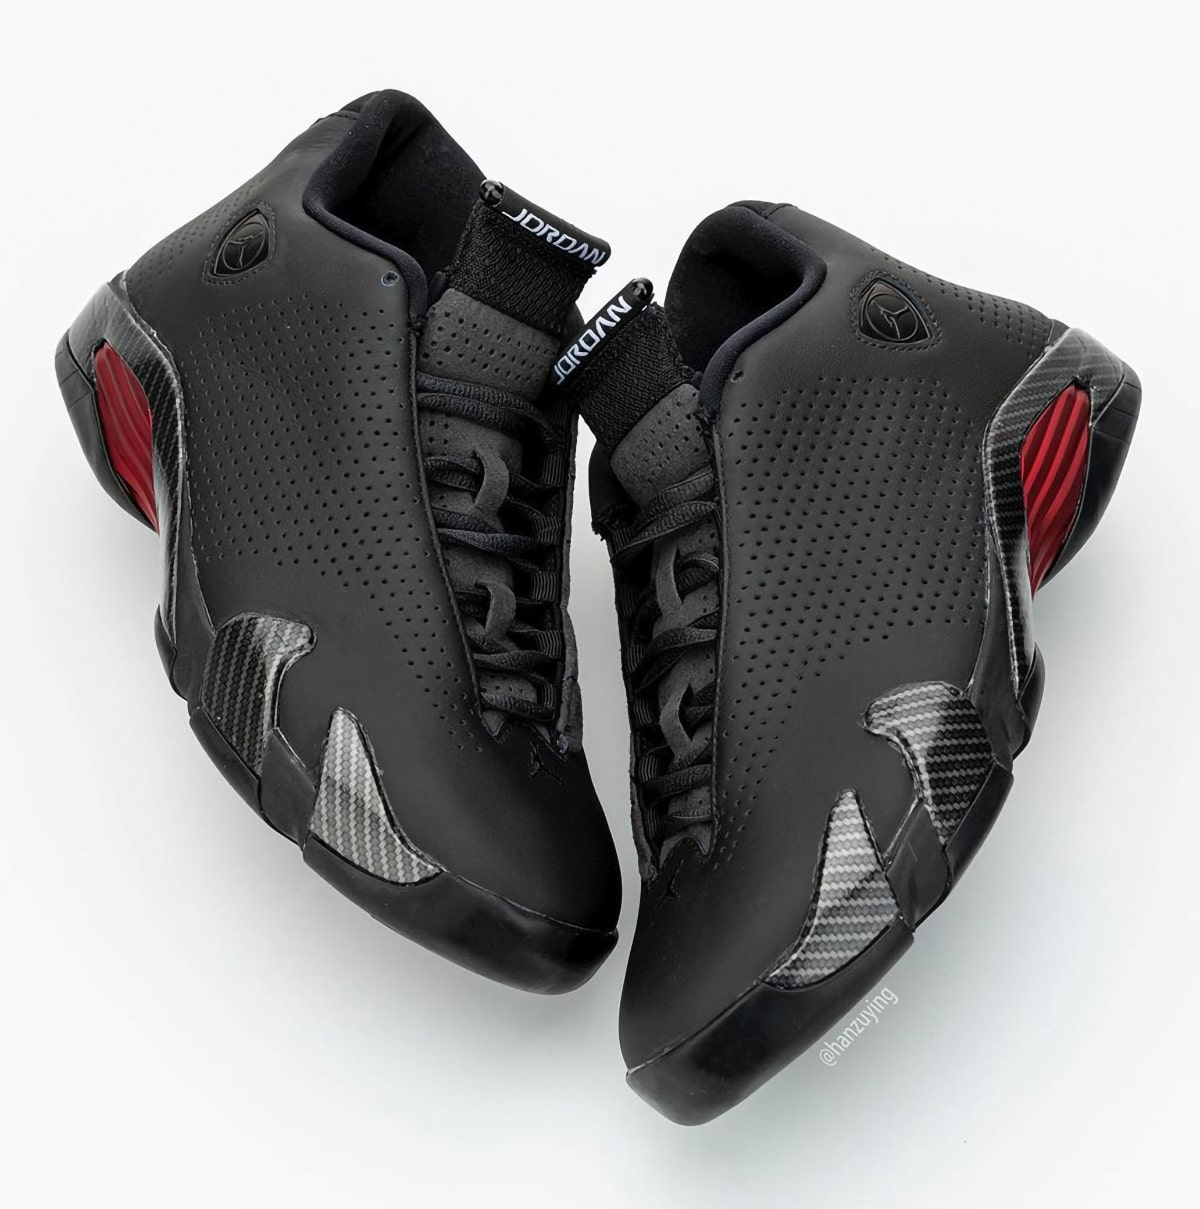 Where To Buy Cyber Monday S Air Jordan 14 Black Ferrari House Of Heat